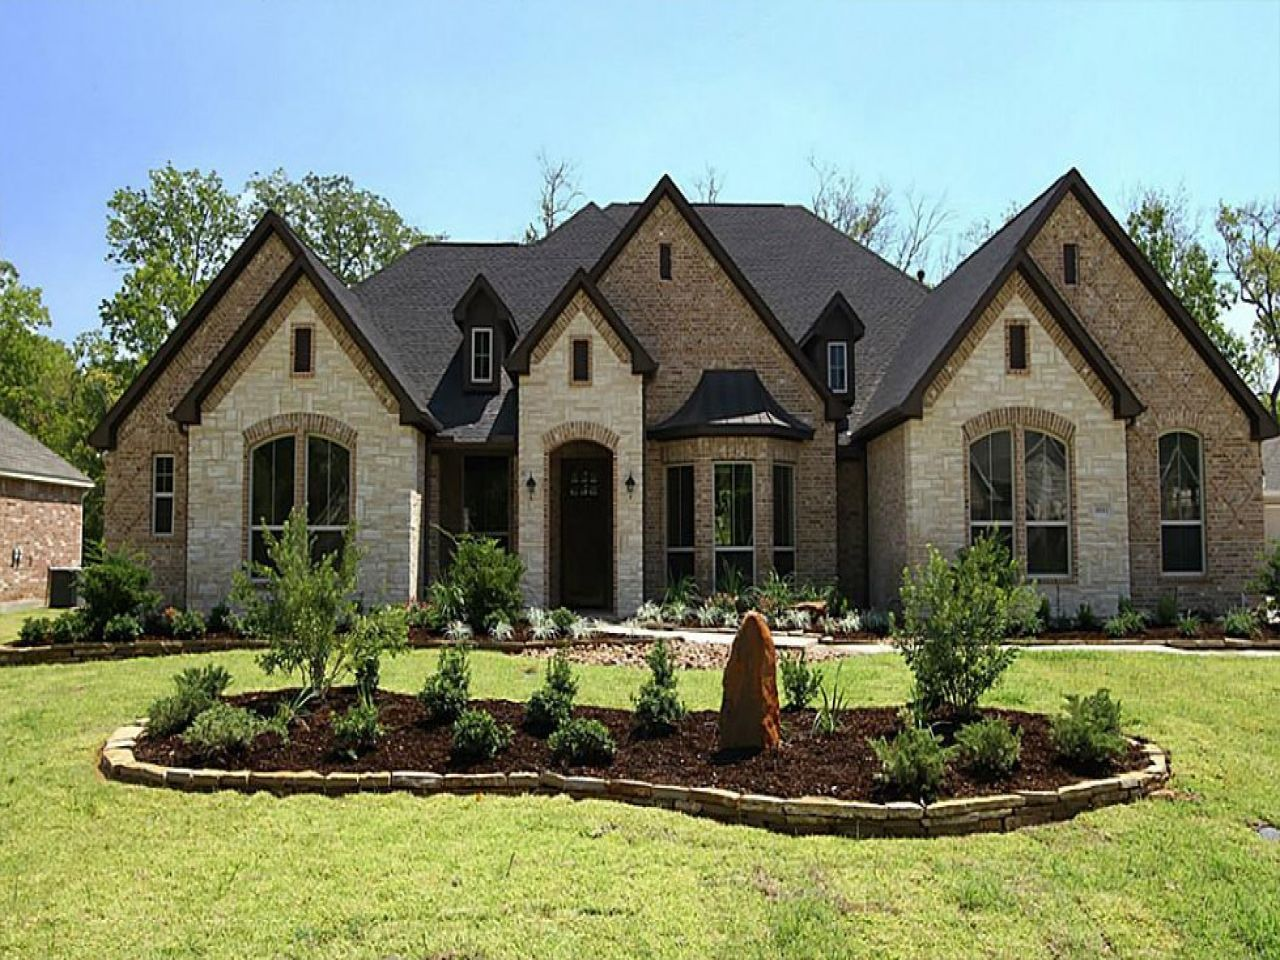 Brick Home Exterior Red Brick Home Exterior View Brick Ranch Home Luxury New Brick Home Desig Brick Exterior House Stone Exterior Houses House Designs Exterior